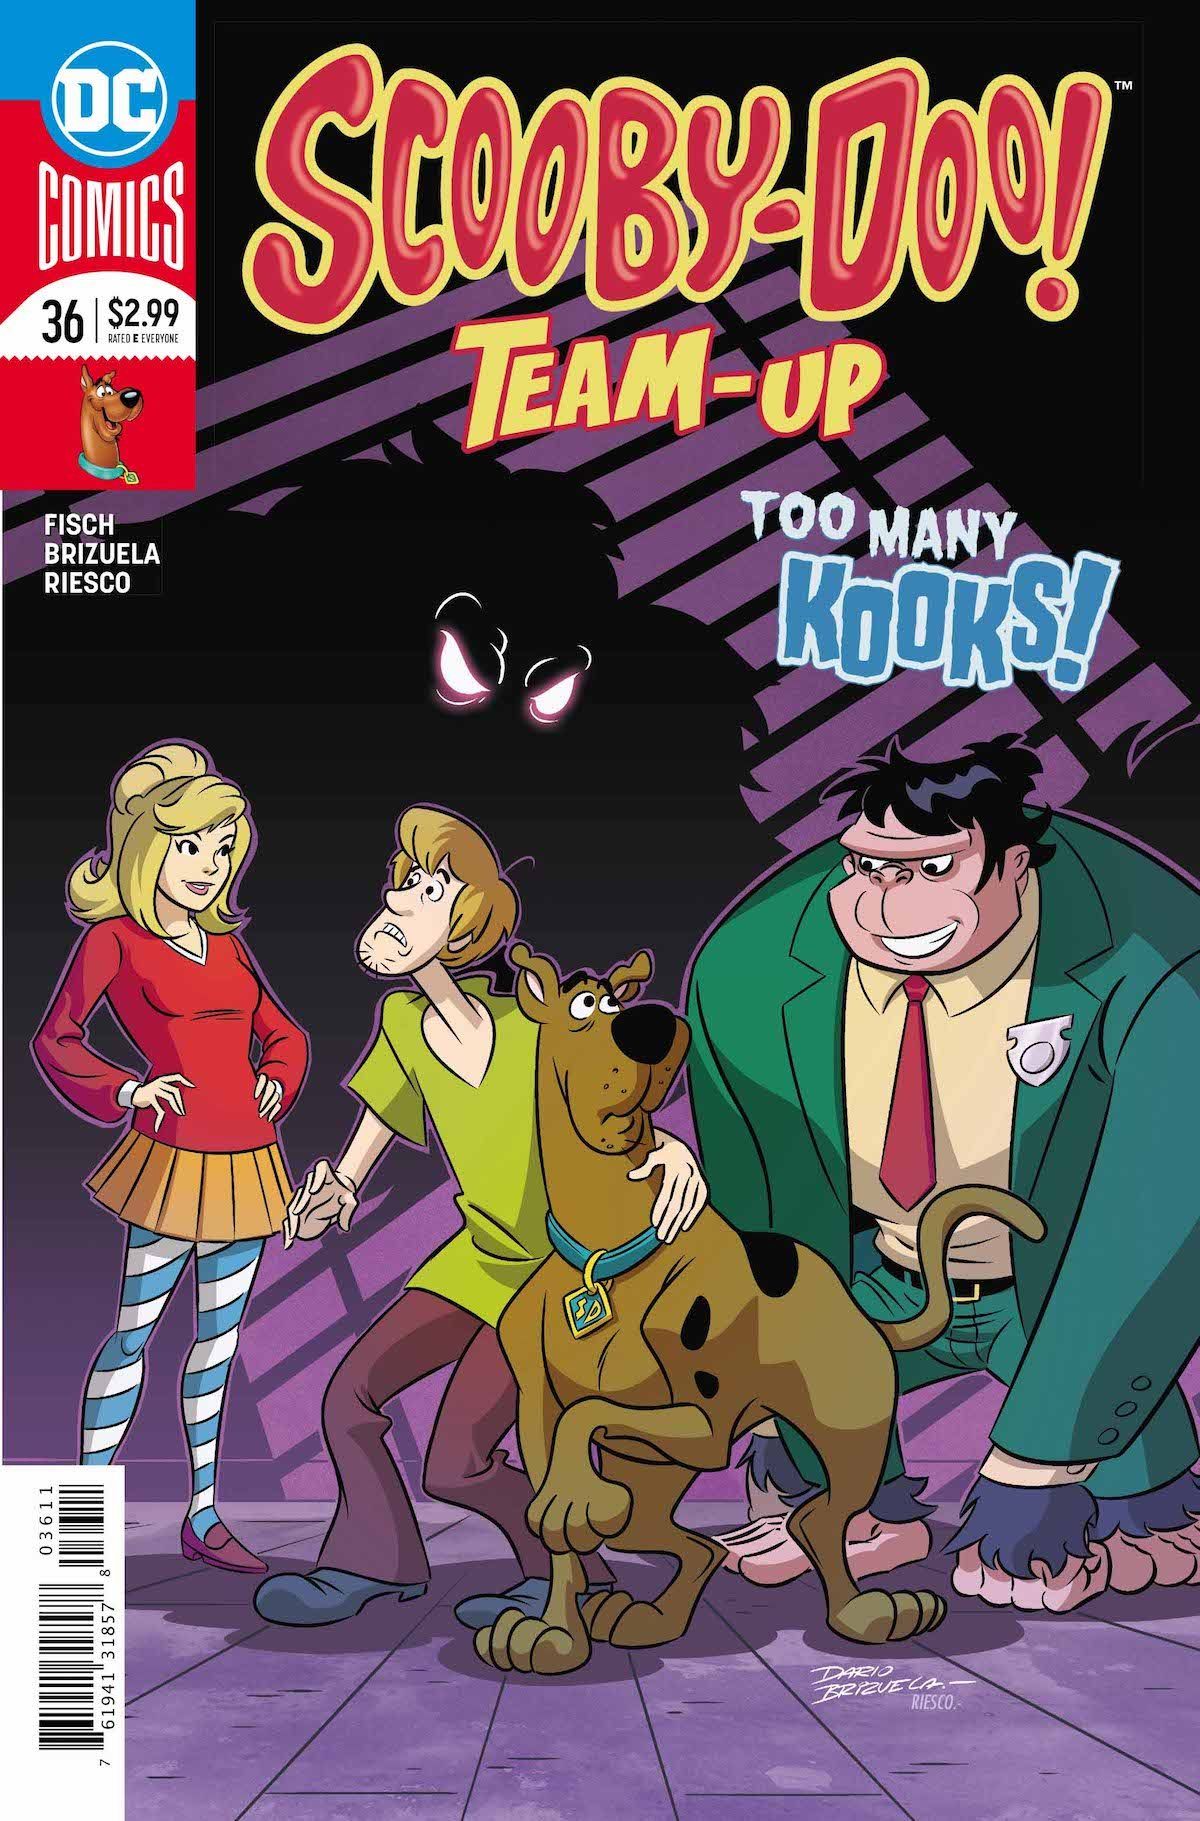 Scooby Doo Team-Up #36 page 1